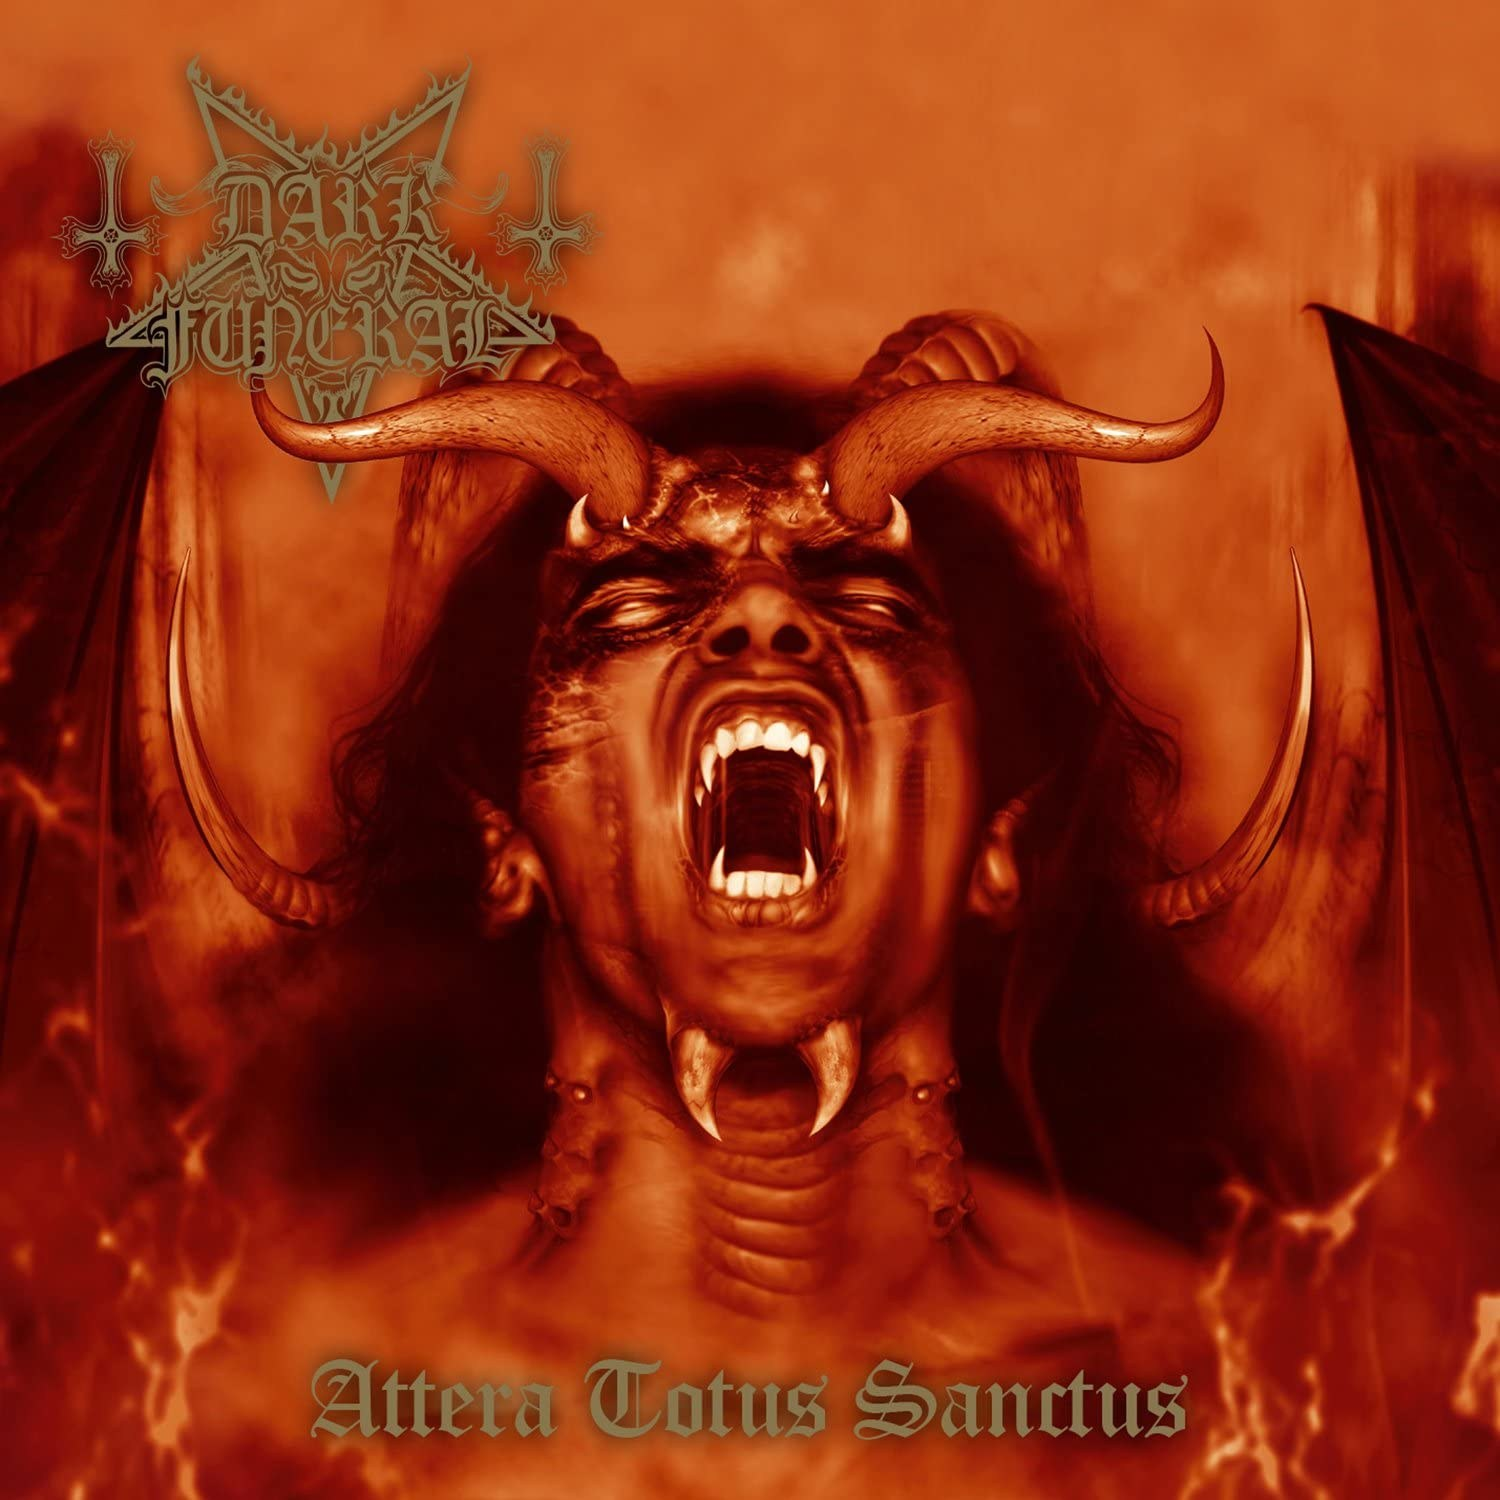 Review for Dark Funeral - Attera Totus Sanctus